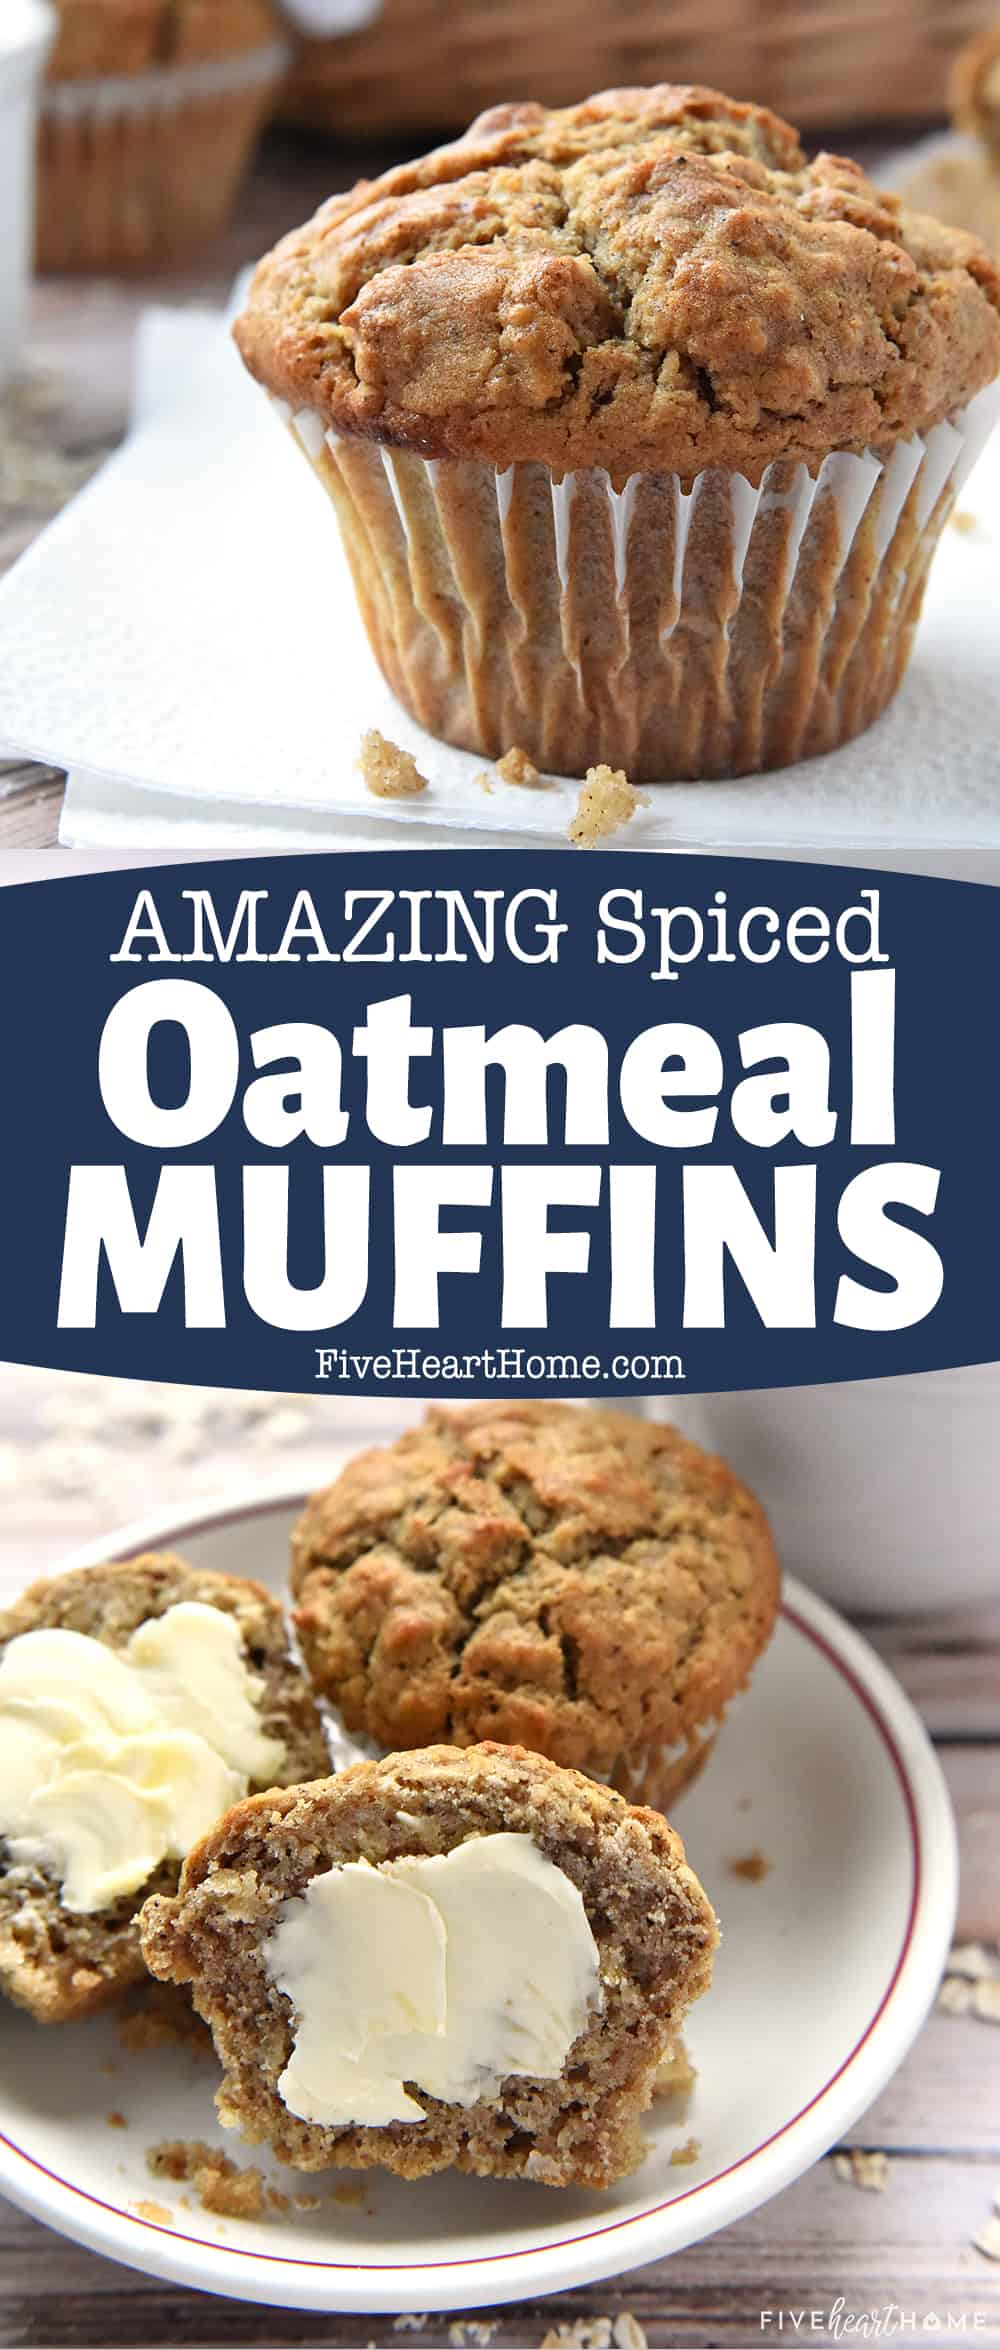 Spiced Oatmeal Muffins ~ perfectly spiced with crunchy tops and pillowy centers, making them a wholesome, delicious breakfast on-the-go or anytime snack! | FiveHeartHome.com via @fivehearthome